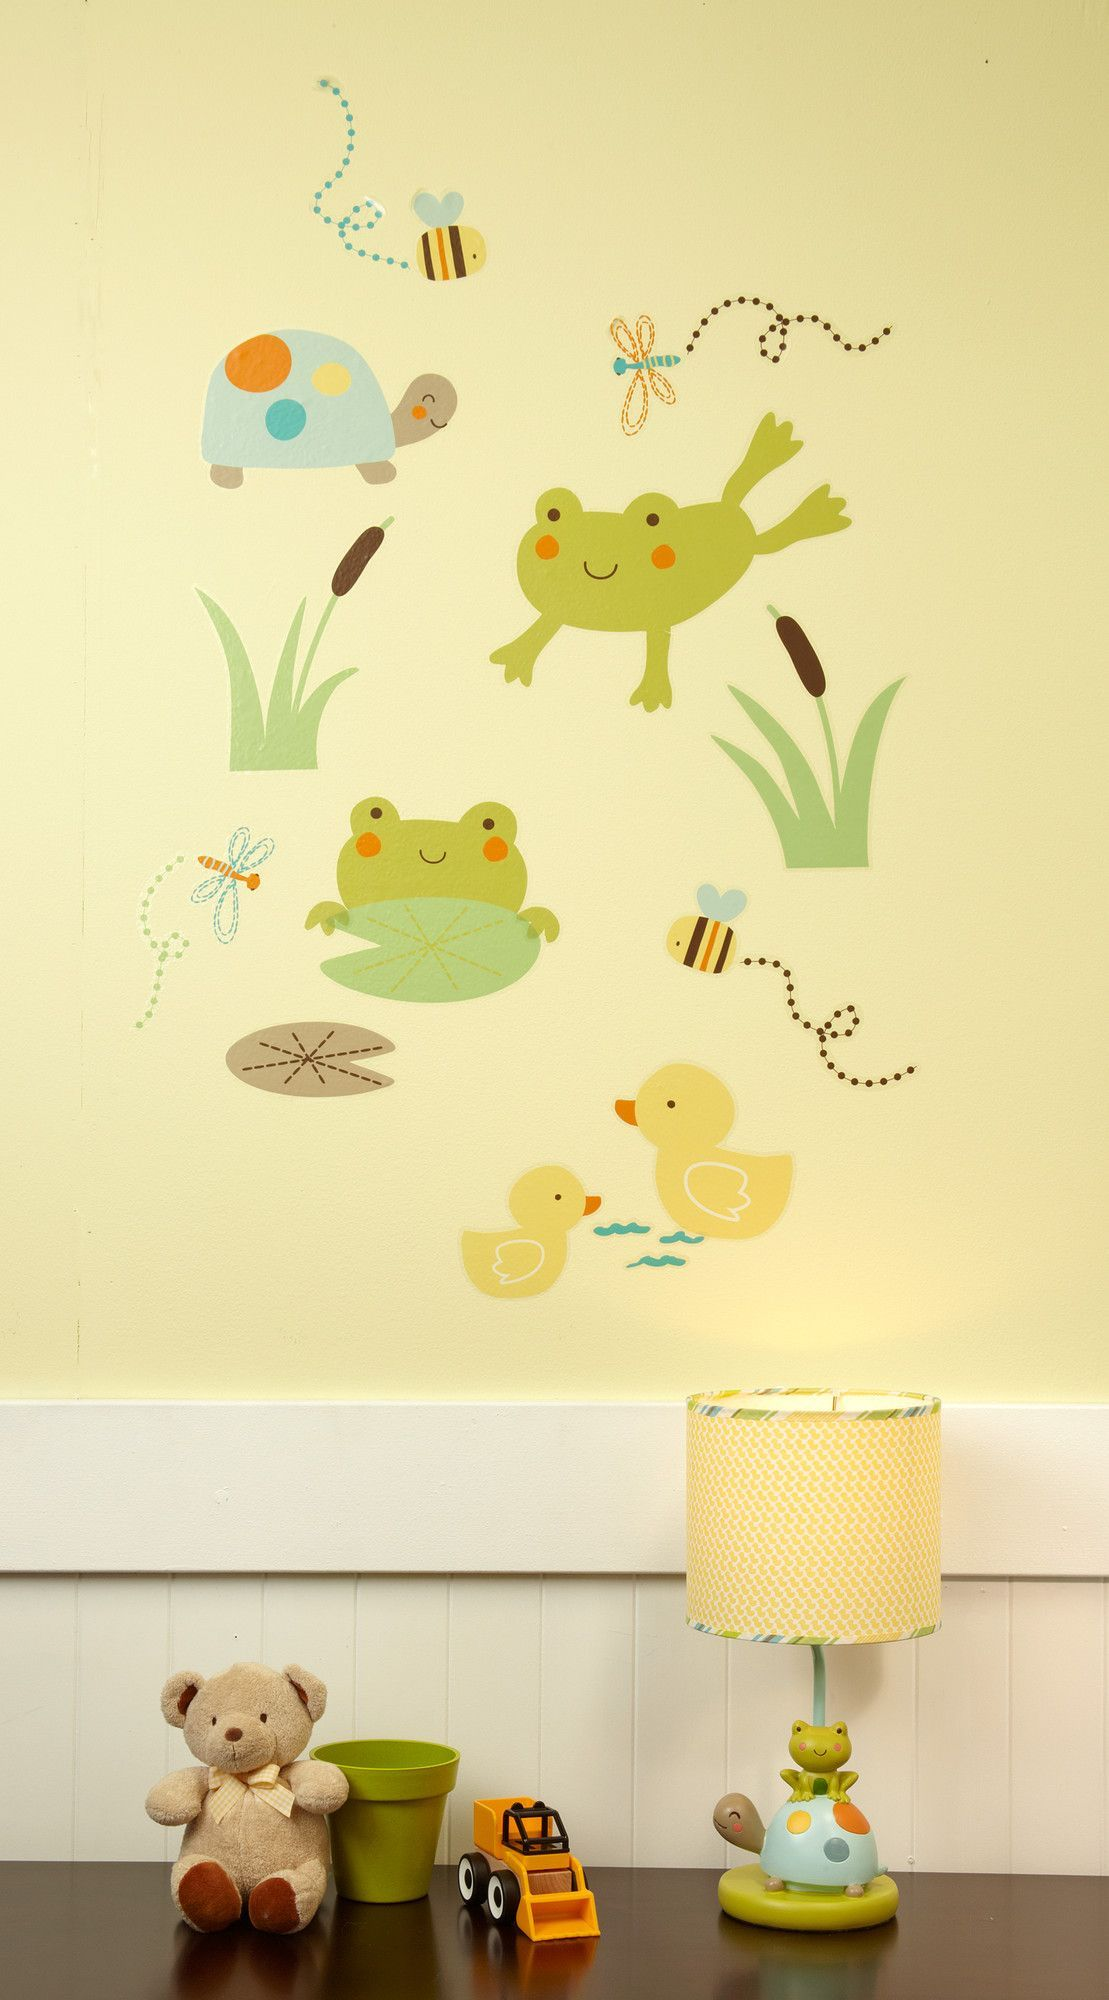 Pond Wall Decal | Pond, Wall decals and Baby things